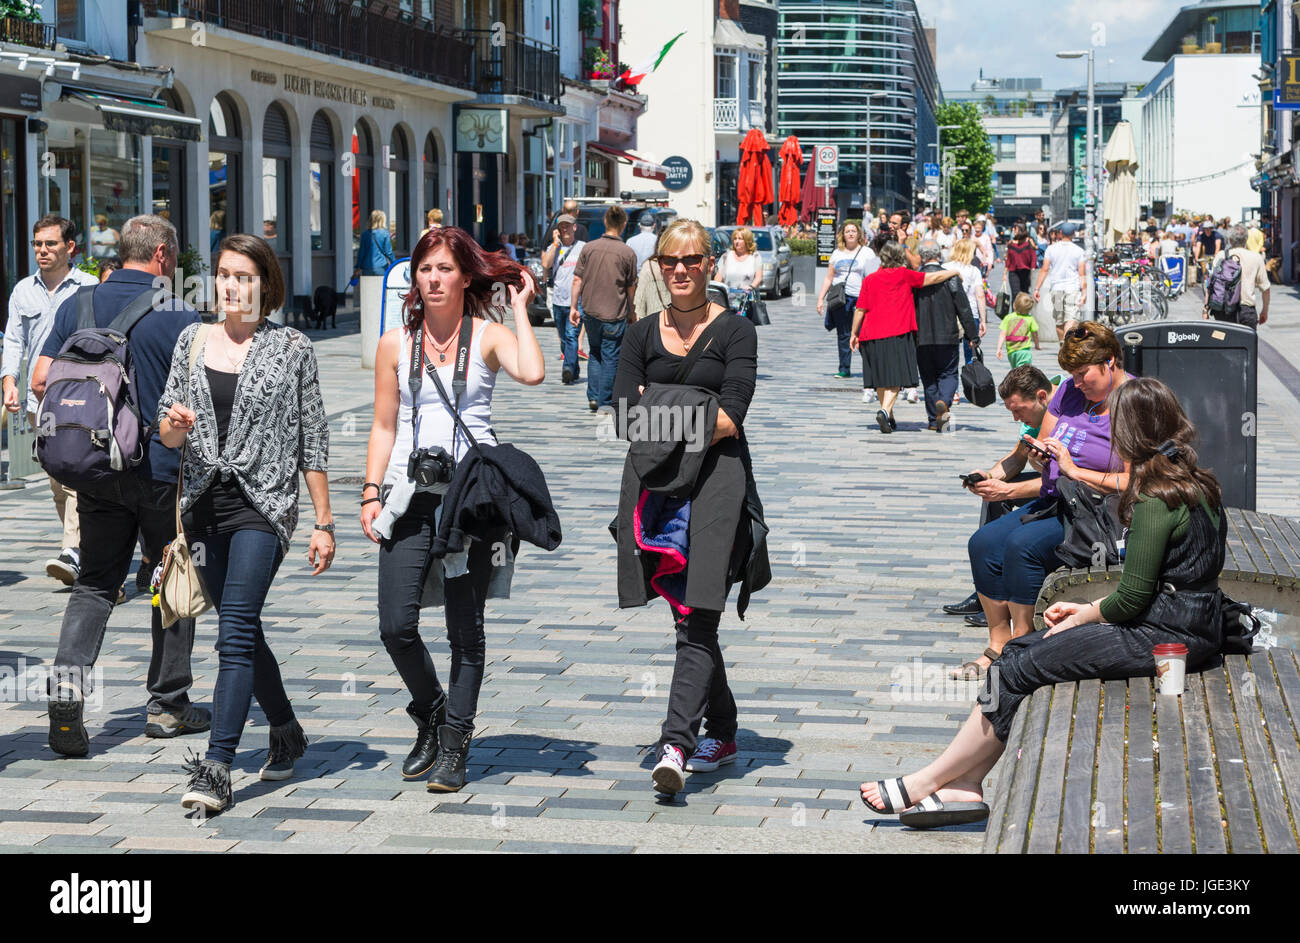 Young female friends and other people walking in a pedestrians only zone in the UK. - Stock Image